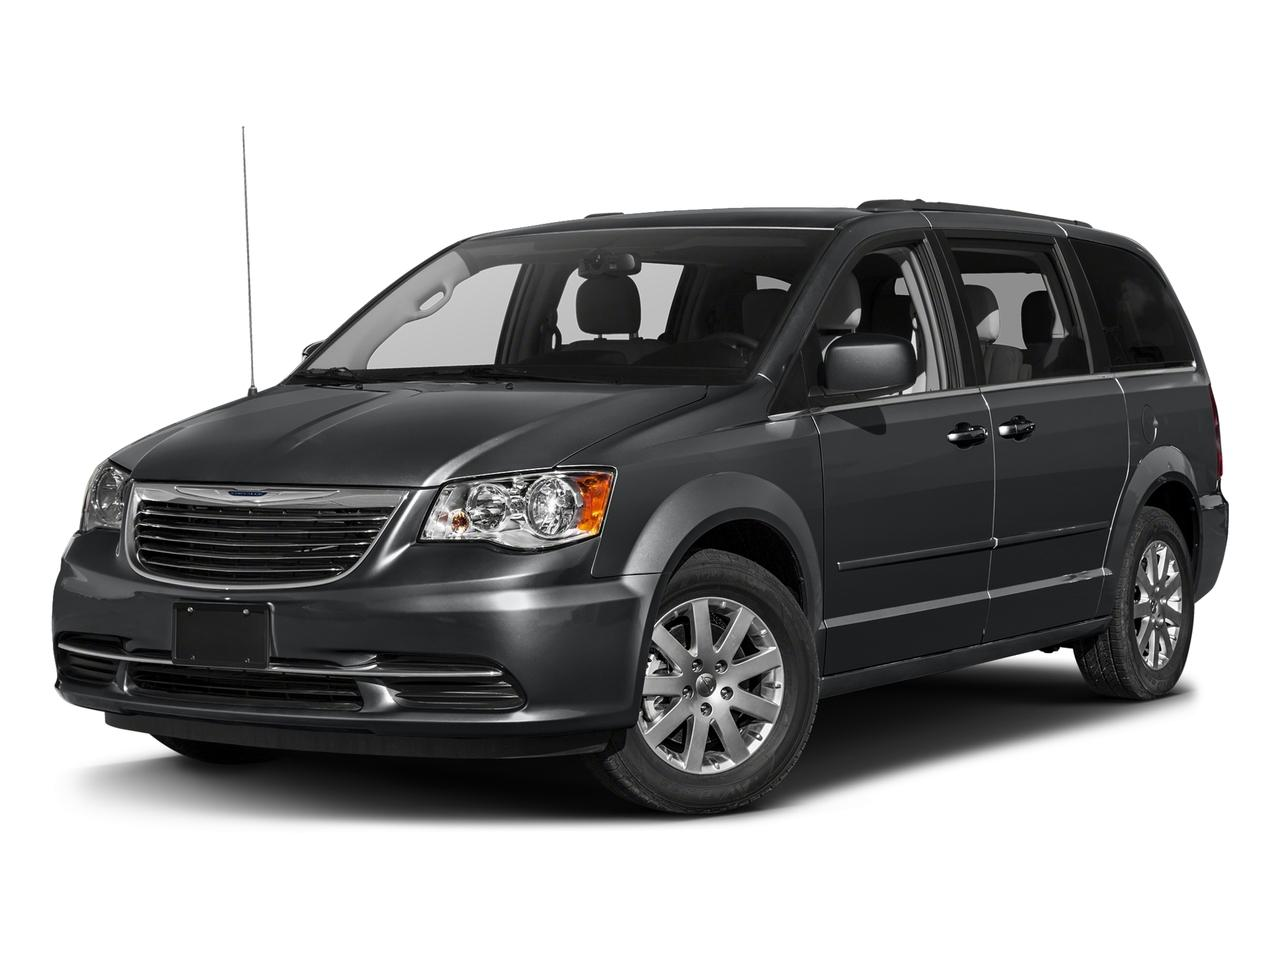 2016 Chrysler Town & Country Vehicle Photo in Temple, TX 76502